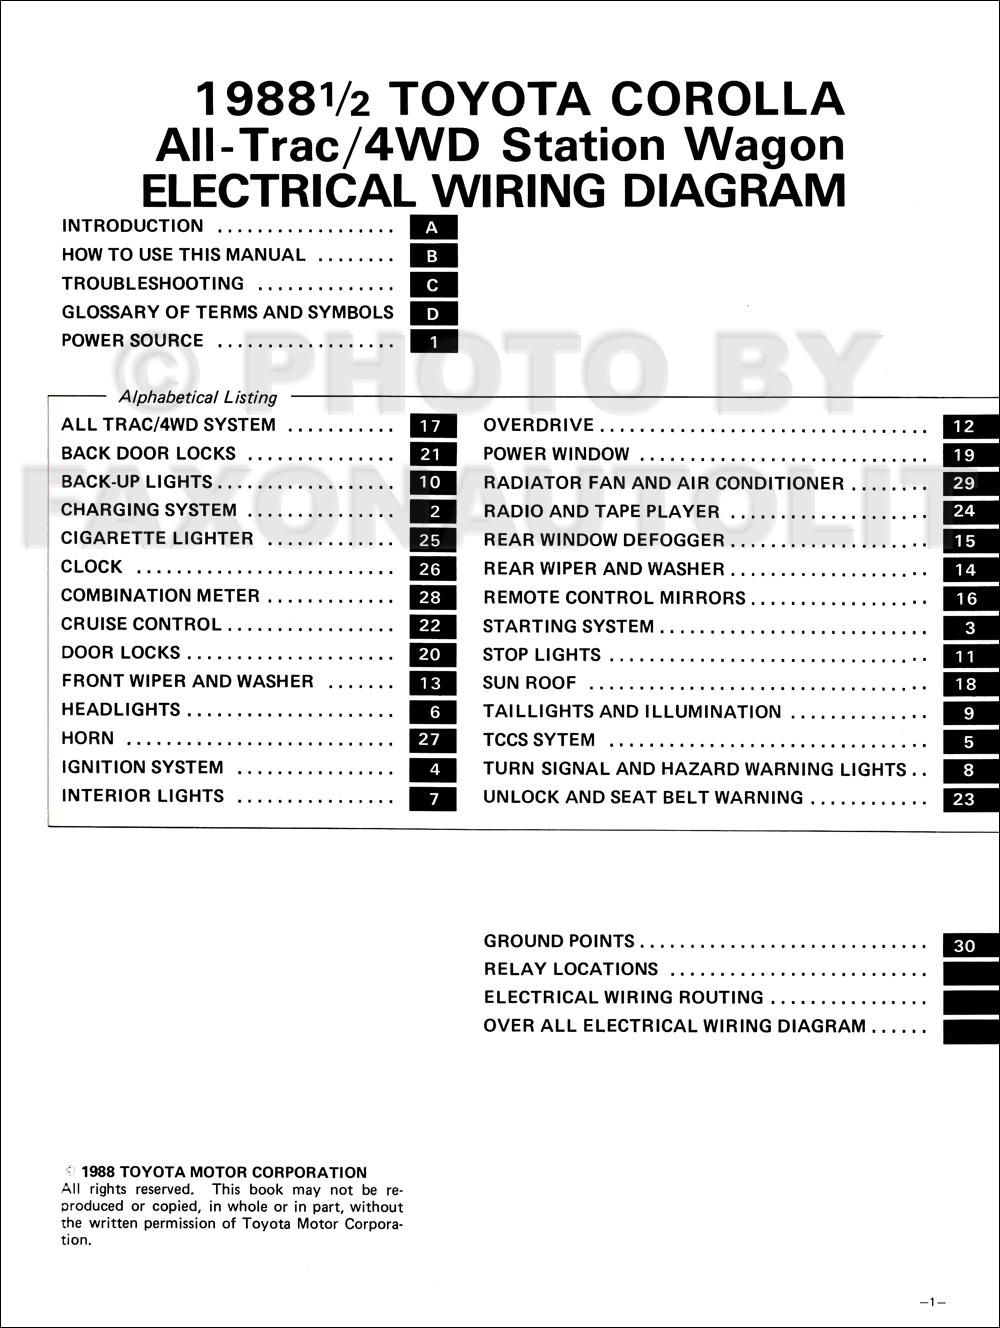 AAD989 1988 Ae92 Toyota Corolla Wiring Diagram | Wiring ResourcesWiring Resources